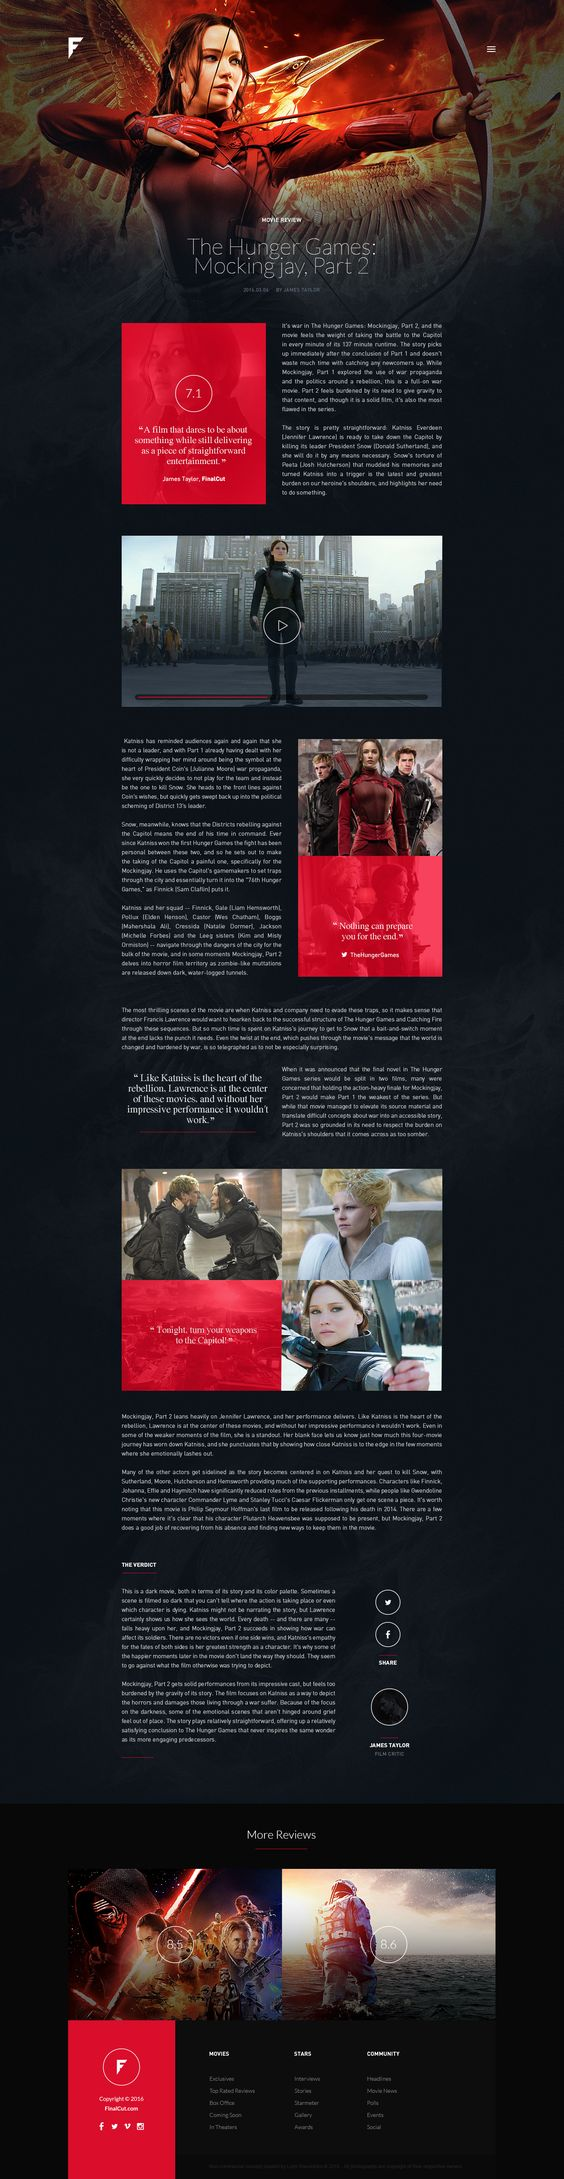 concept design for an online magazine portal on the world of movie concept design for an online magazine portal on the world of movie blockbusters star interviews